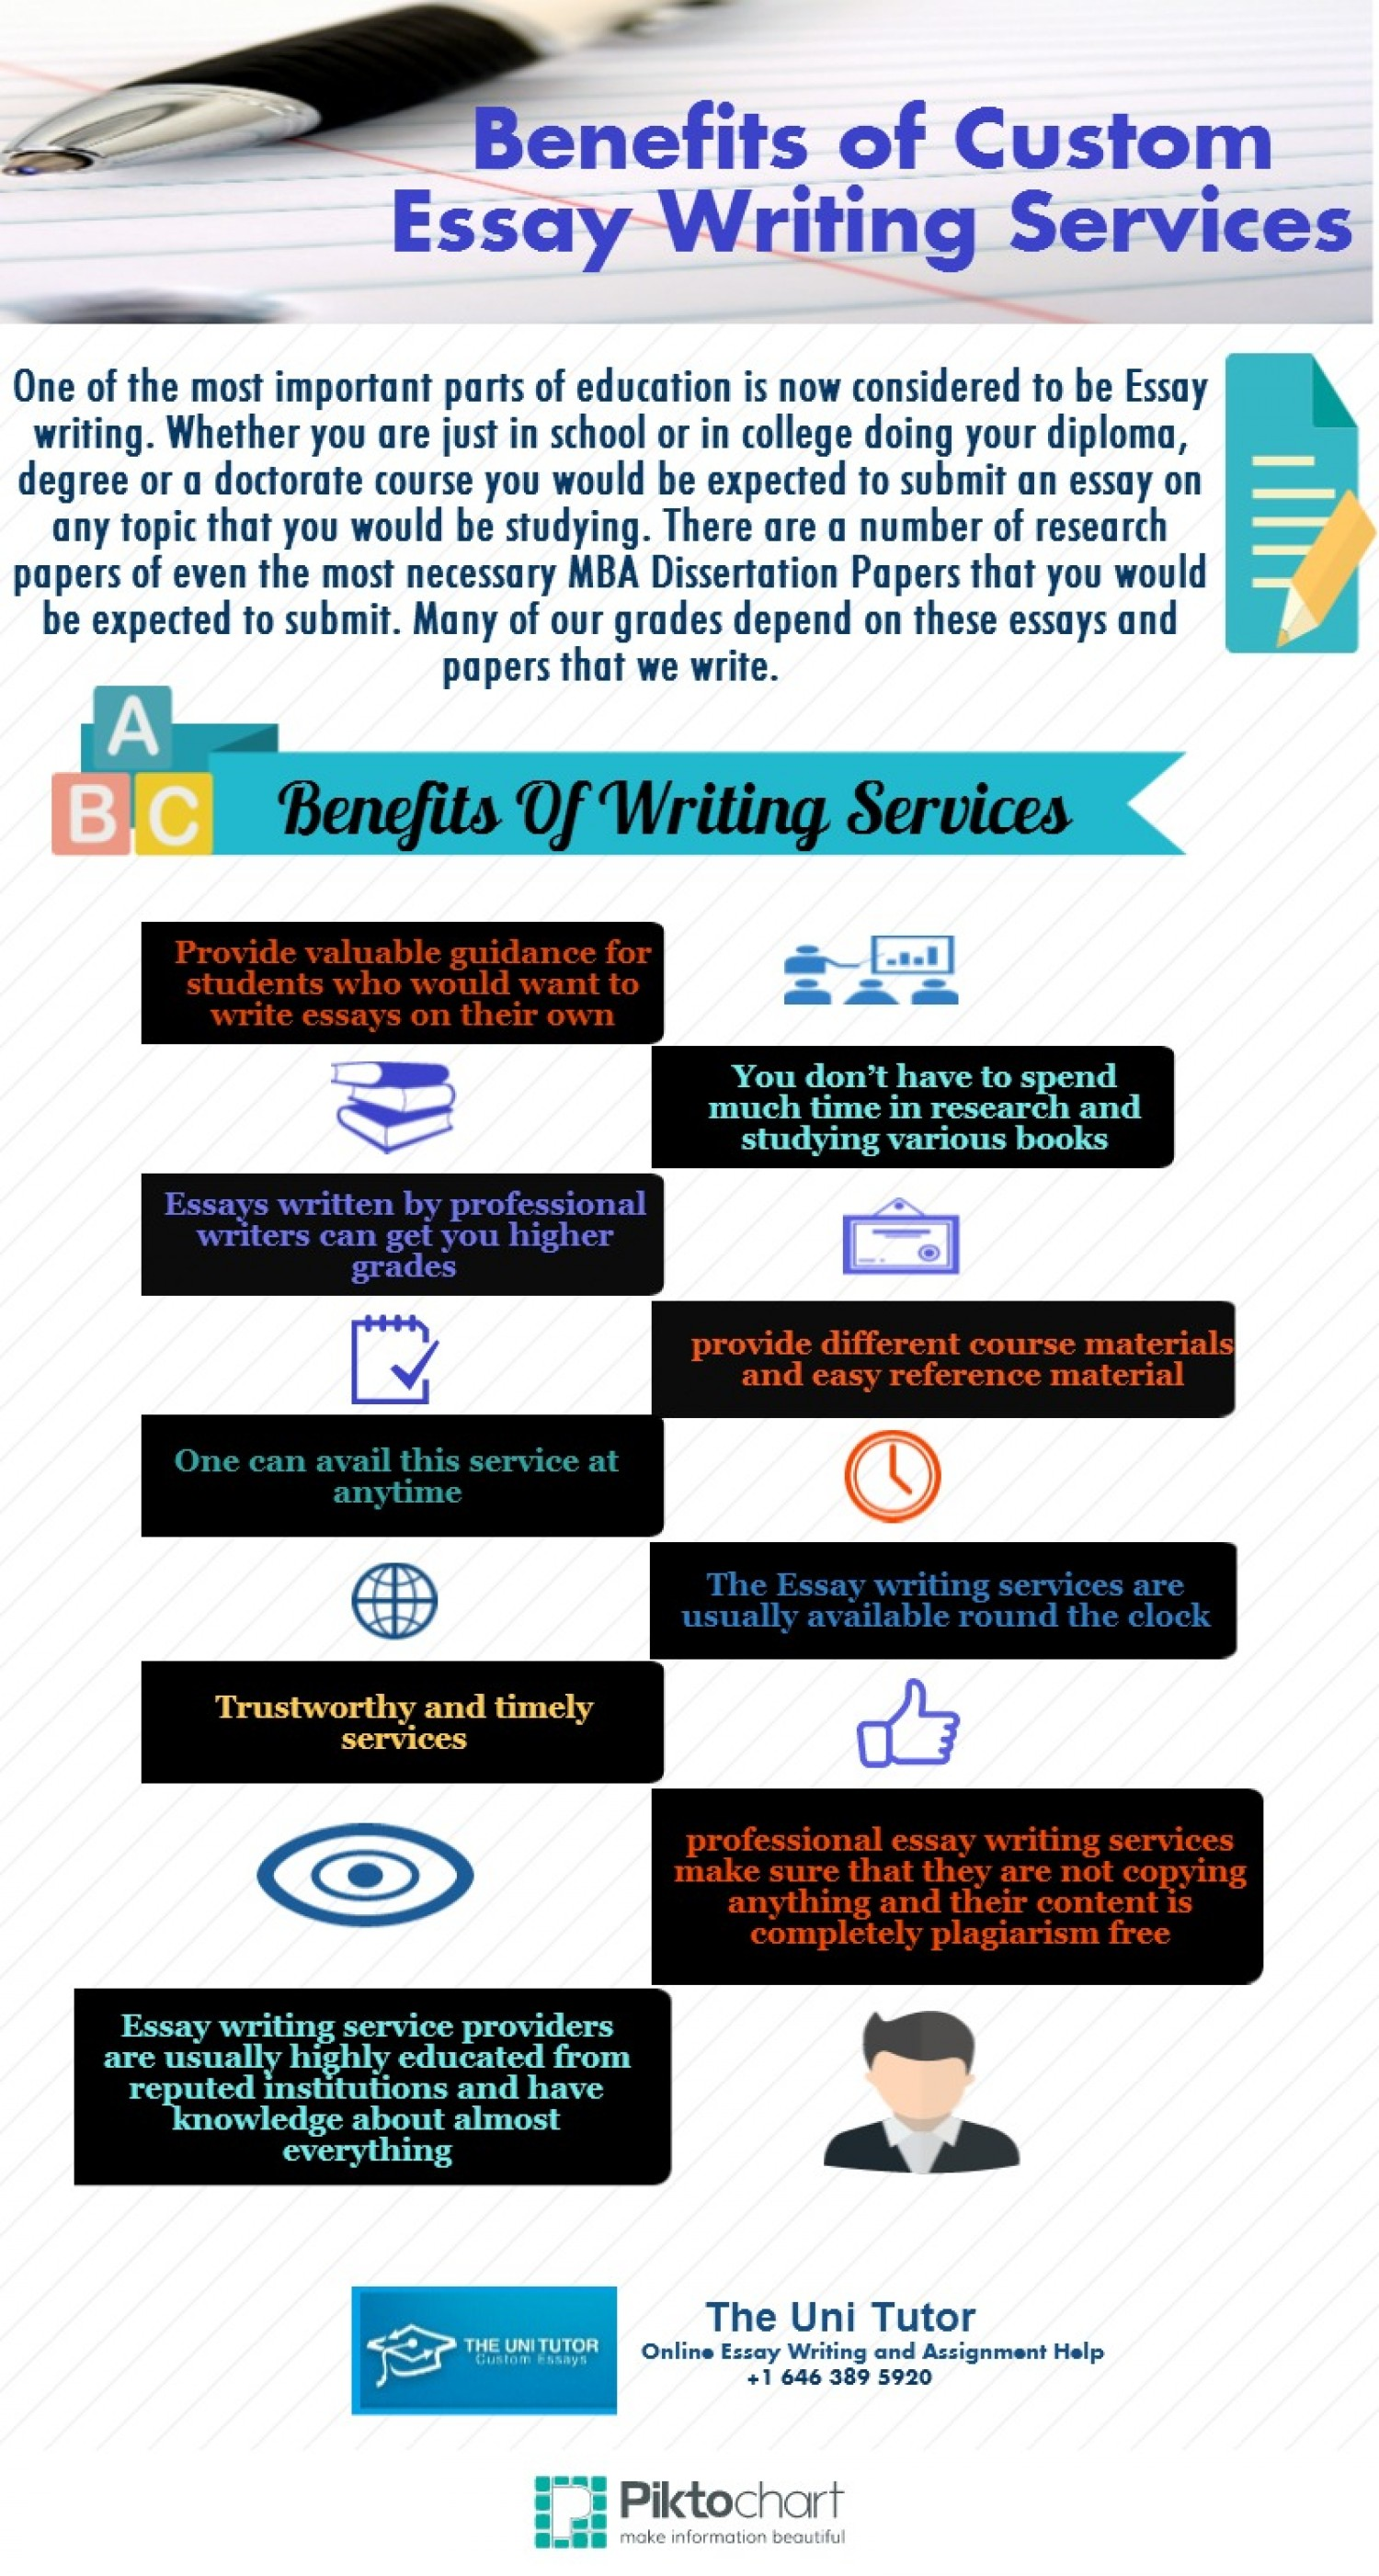 012 Essay Example Benefits Of Custom Writings 539ee0a2052b6 W1500 Beautiful Service Are Writing Services Legal Cheap Canada Reviews Full